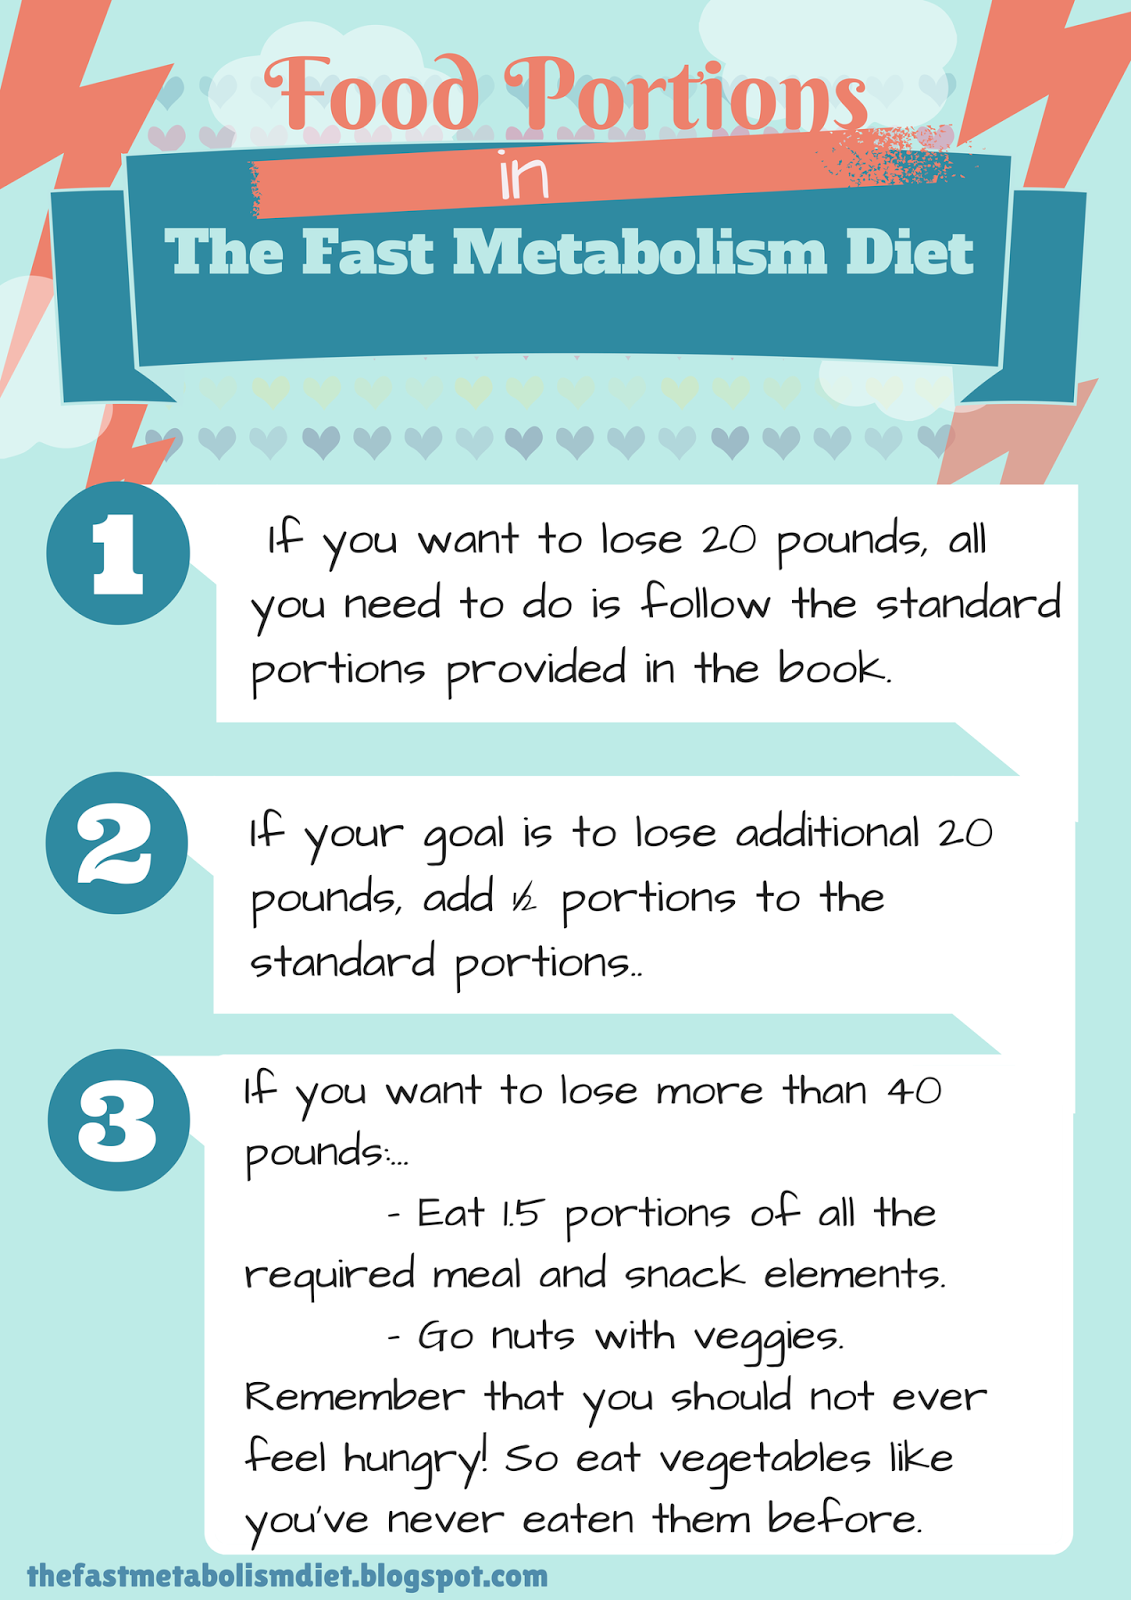 How Quickly Can You Lose Weight on No Carbs